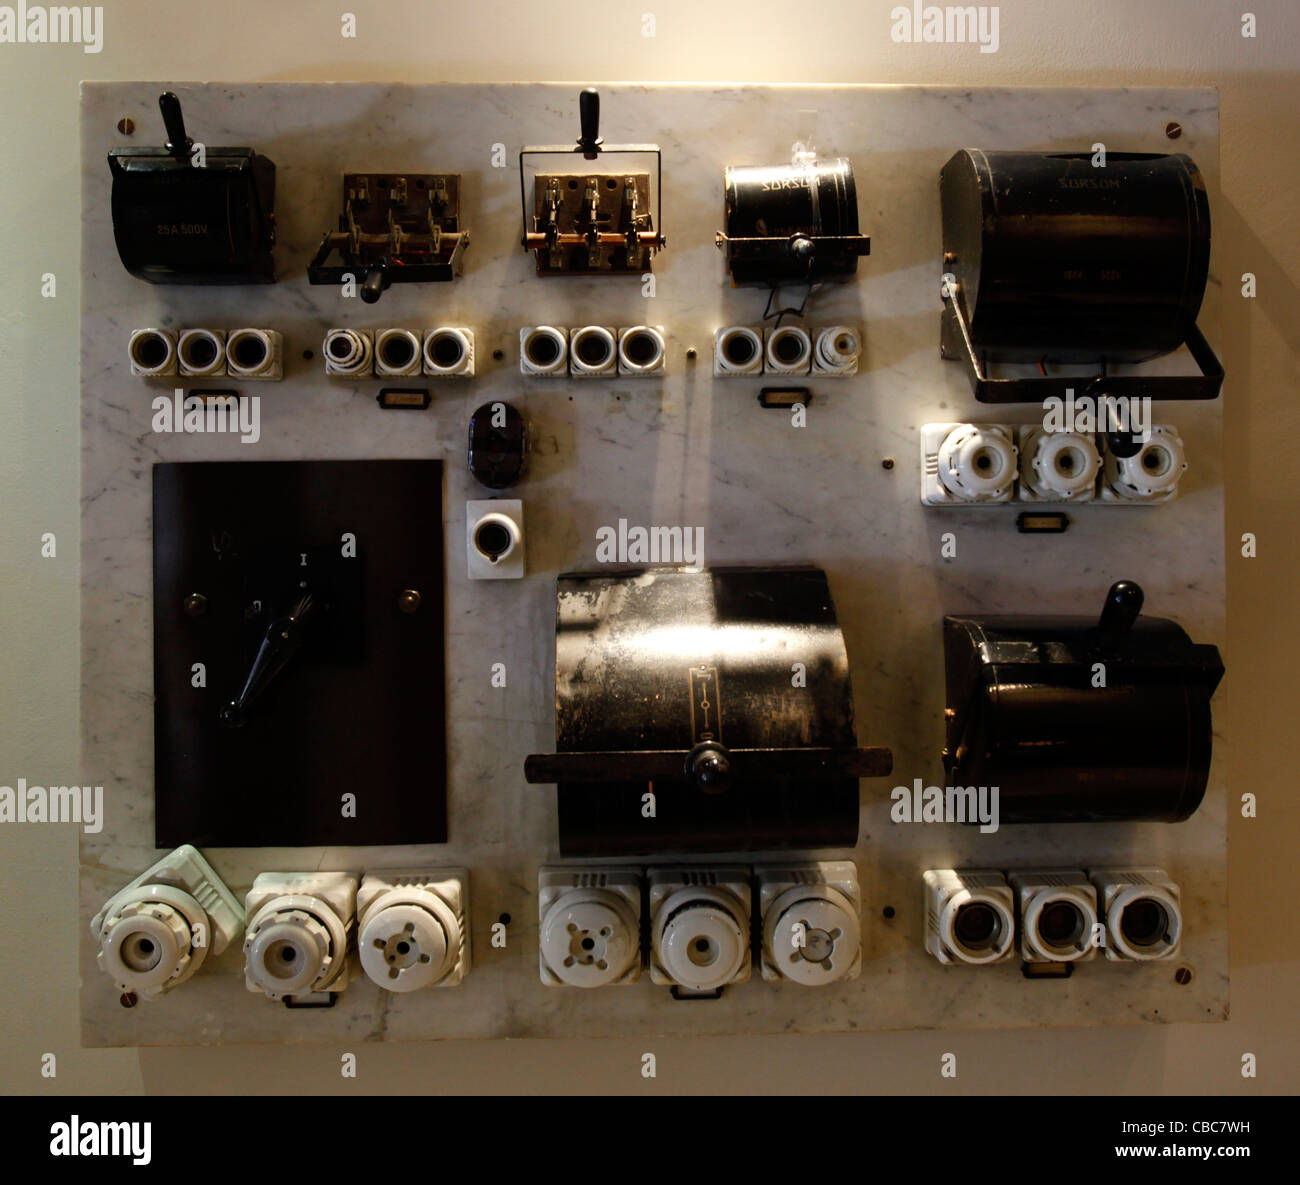 fuse box old fuses stock photo royalty image 123046941 alamy an old electric fuse box switchboard ceramic fuses stock photo